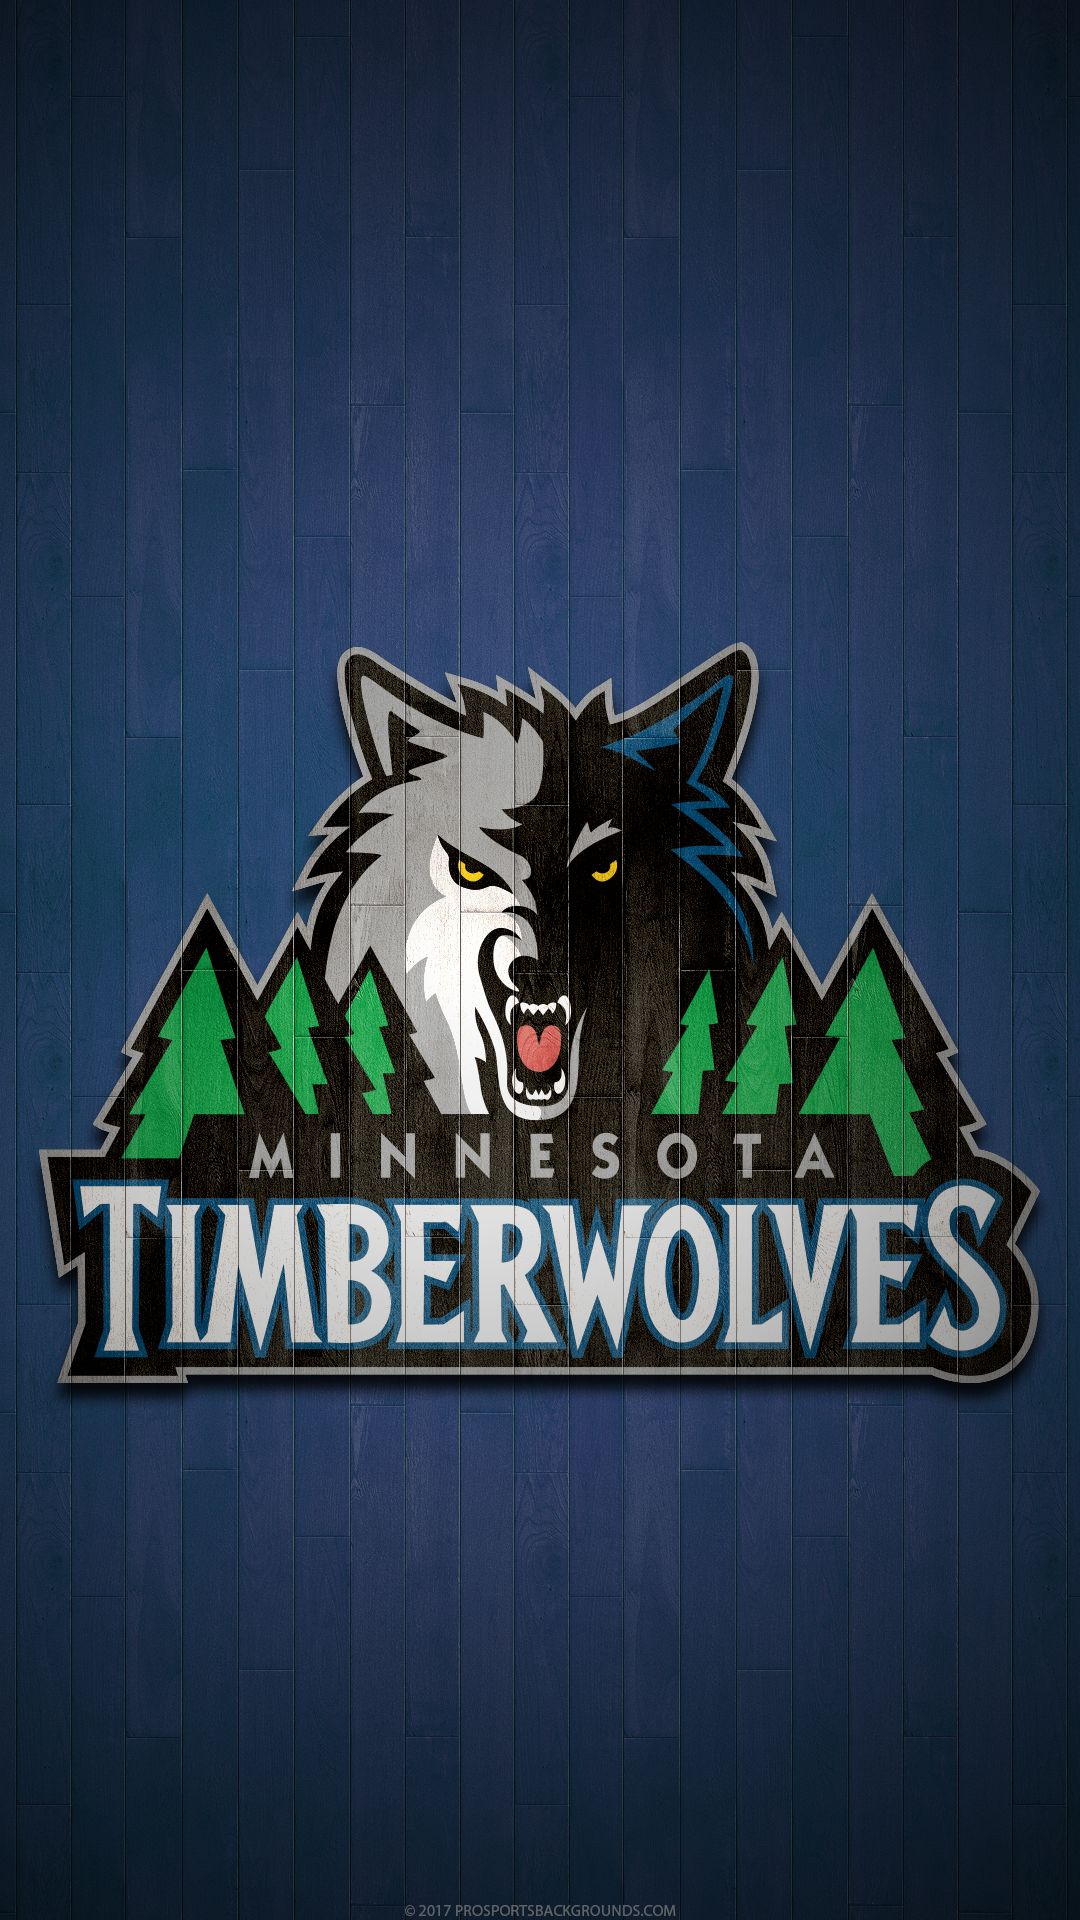 2018 Minnesota Timberwolves Wallpapers   PC iPhone Android 1080x1920